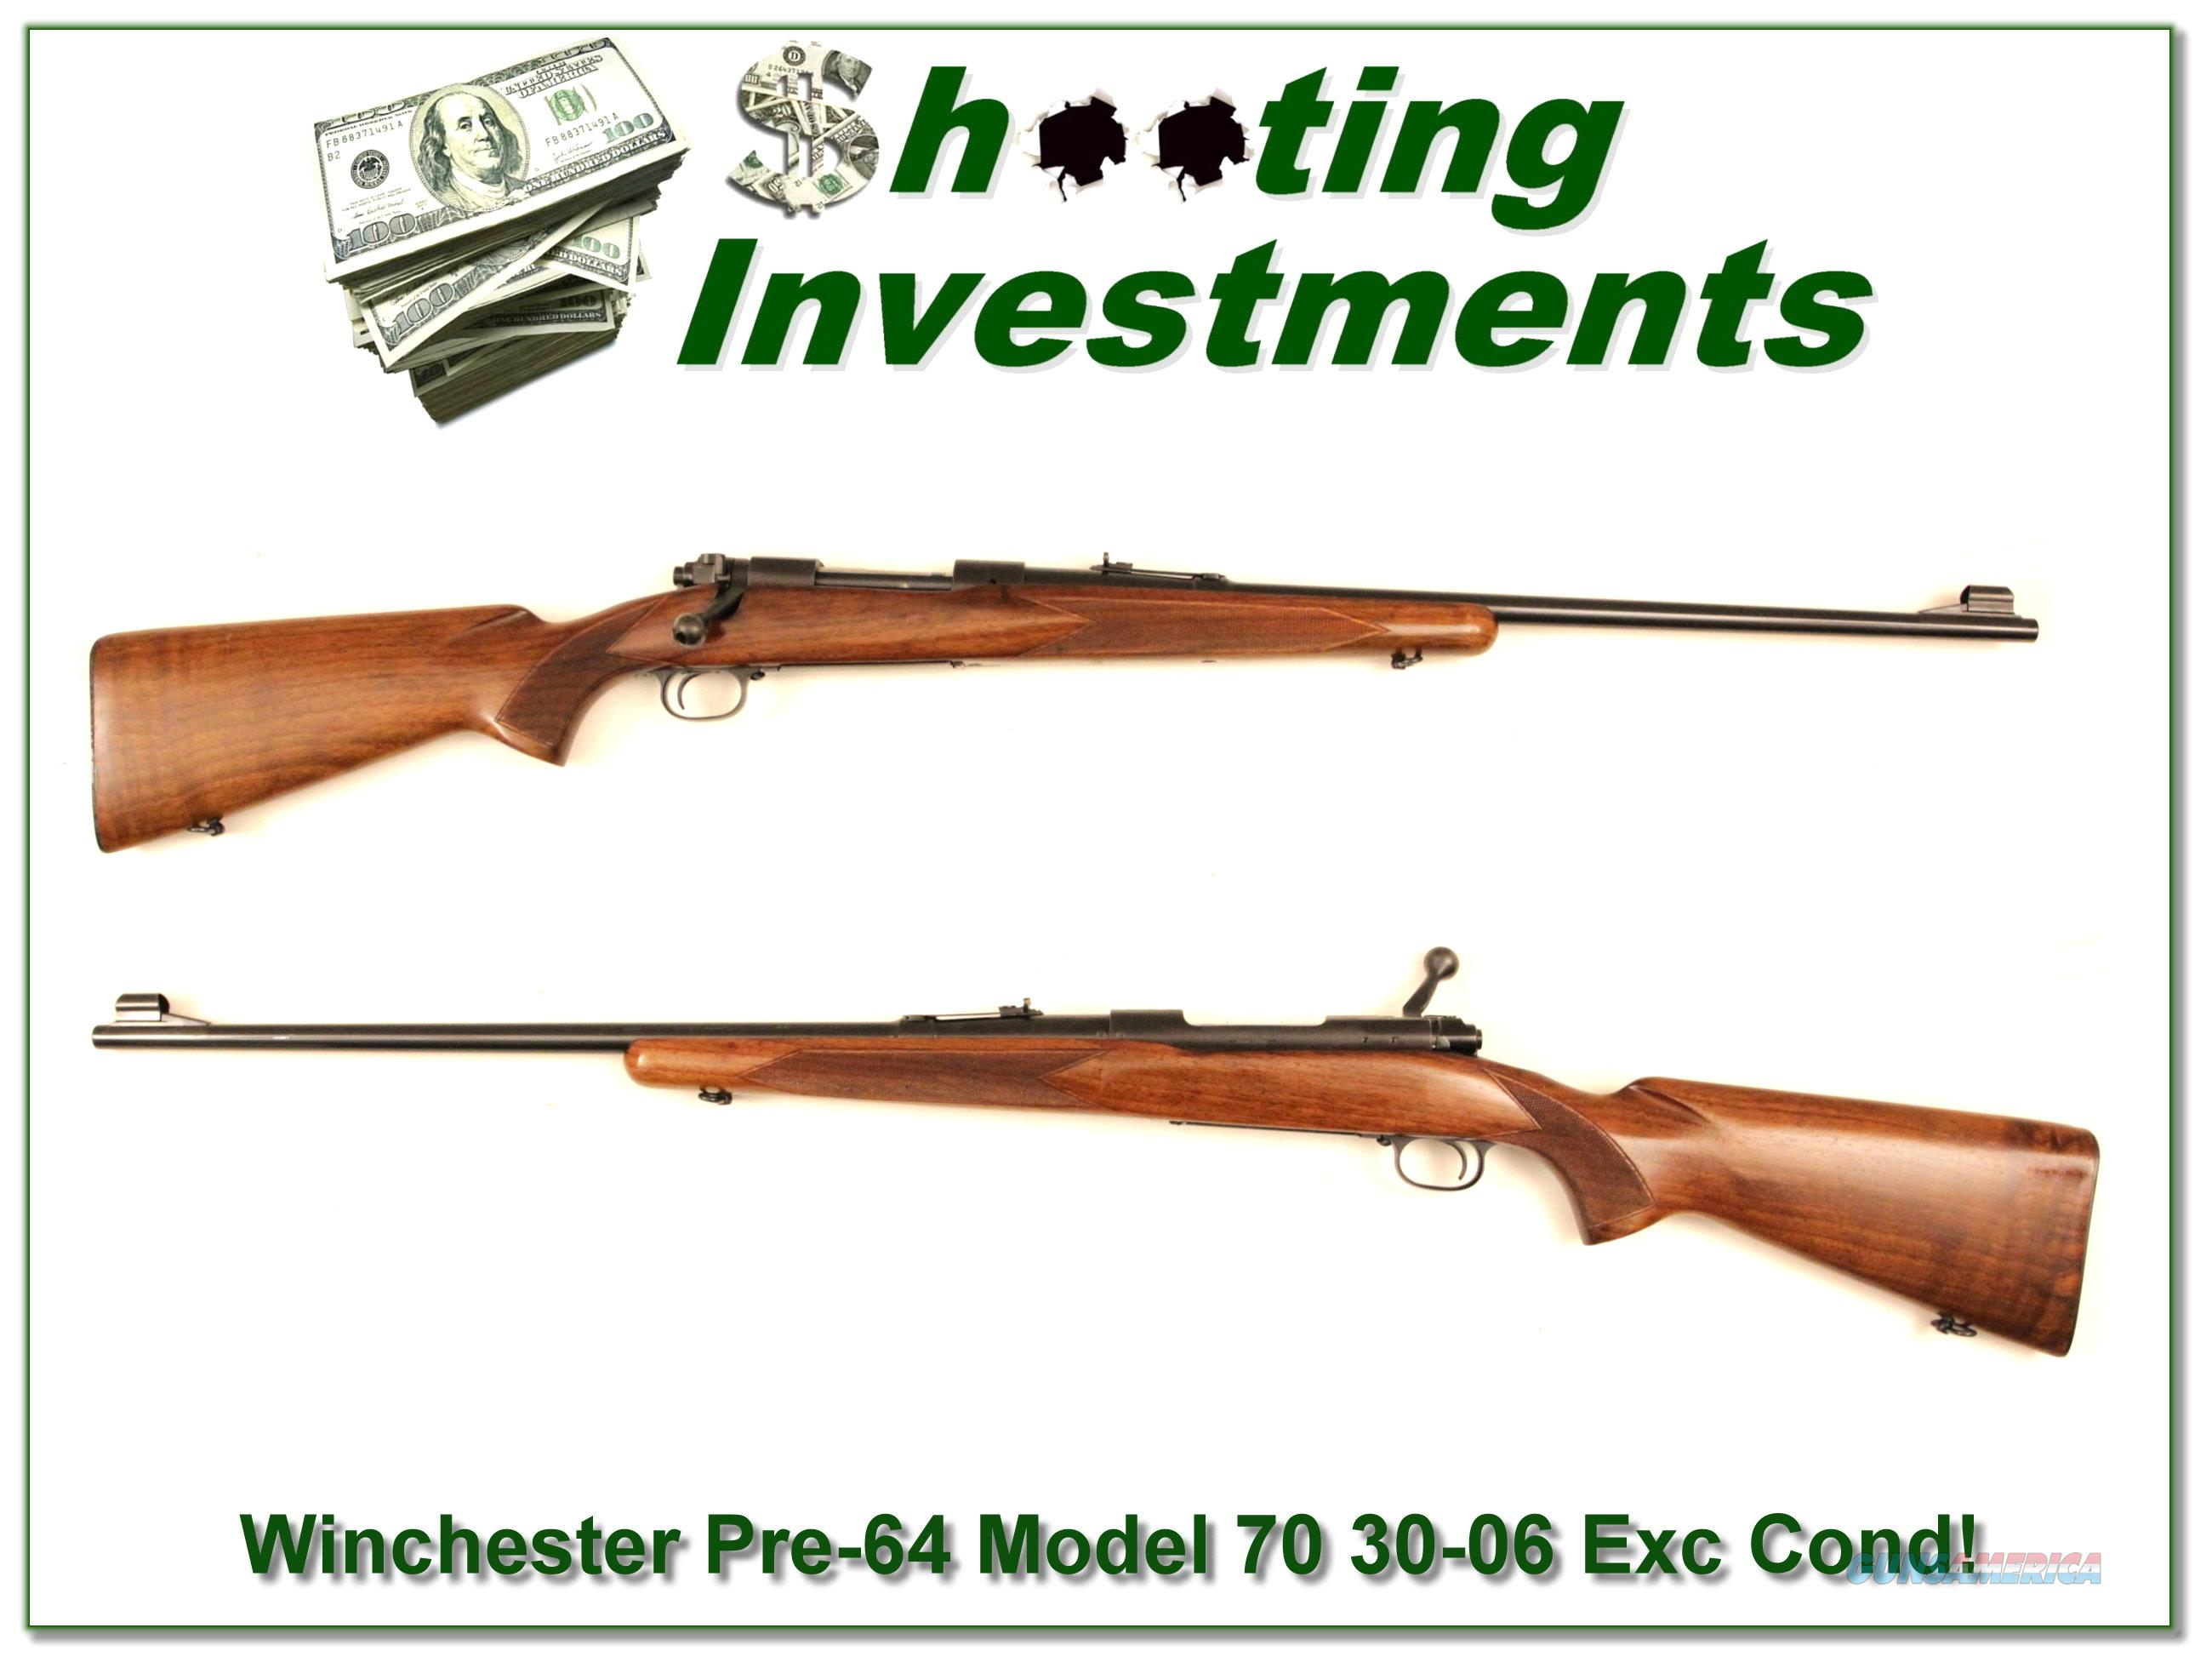 Winchester Pre-64 Model 70 1955 30-06 Exc Cond!  Guns > Rifles > Winchester Rifles - Modern Bolt/Auto/Single > Model 70 > Pre-64